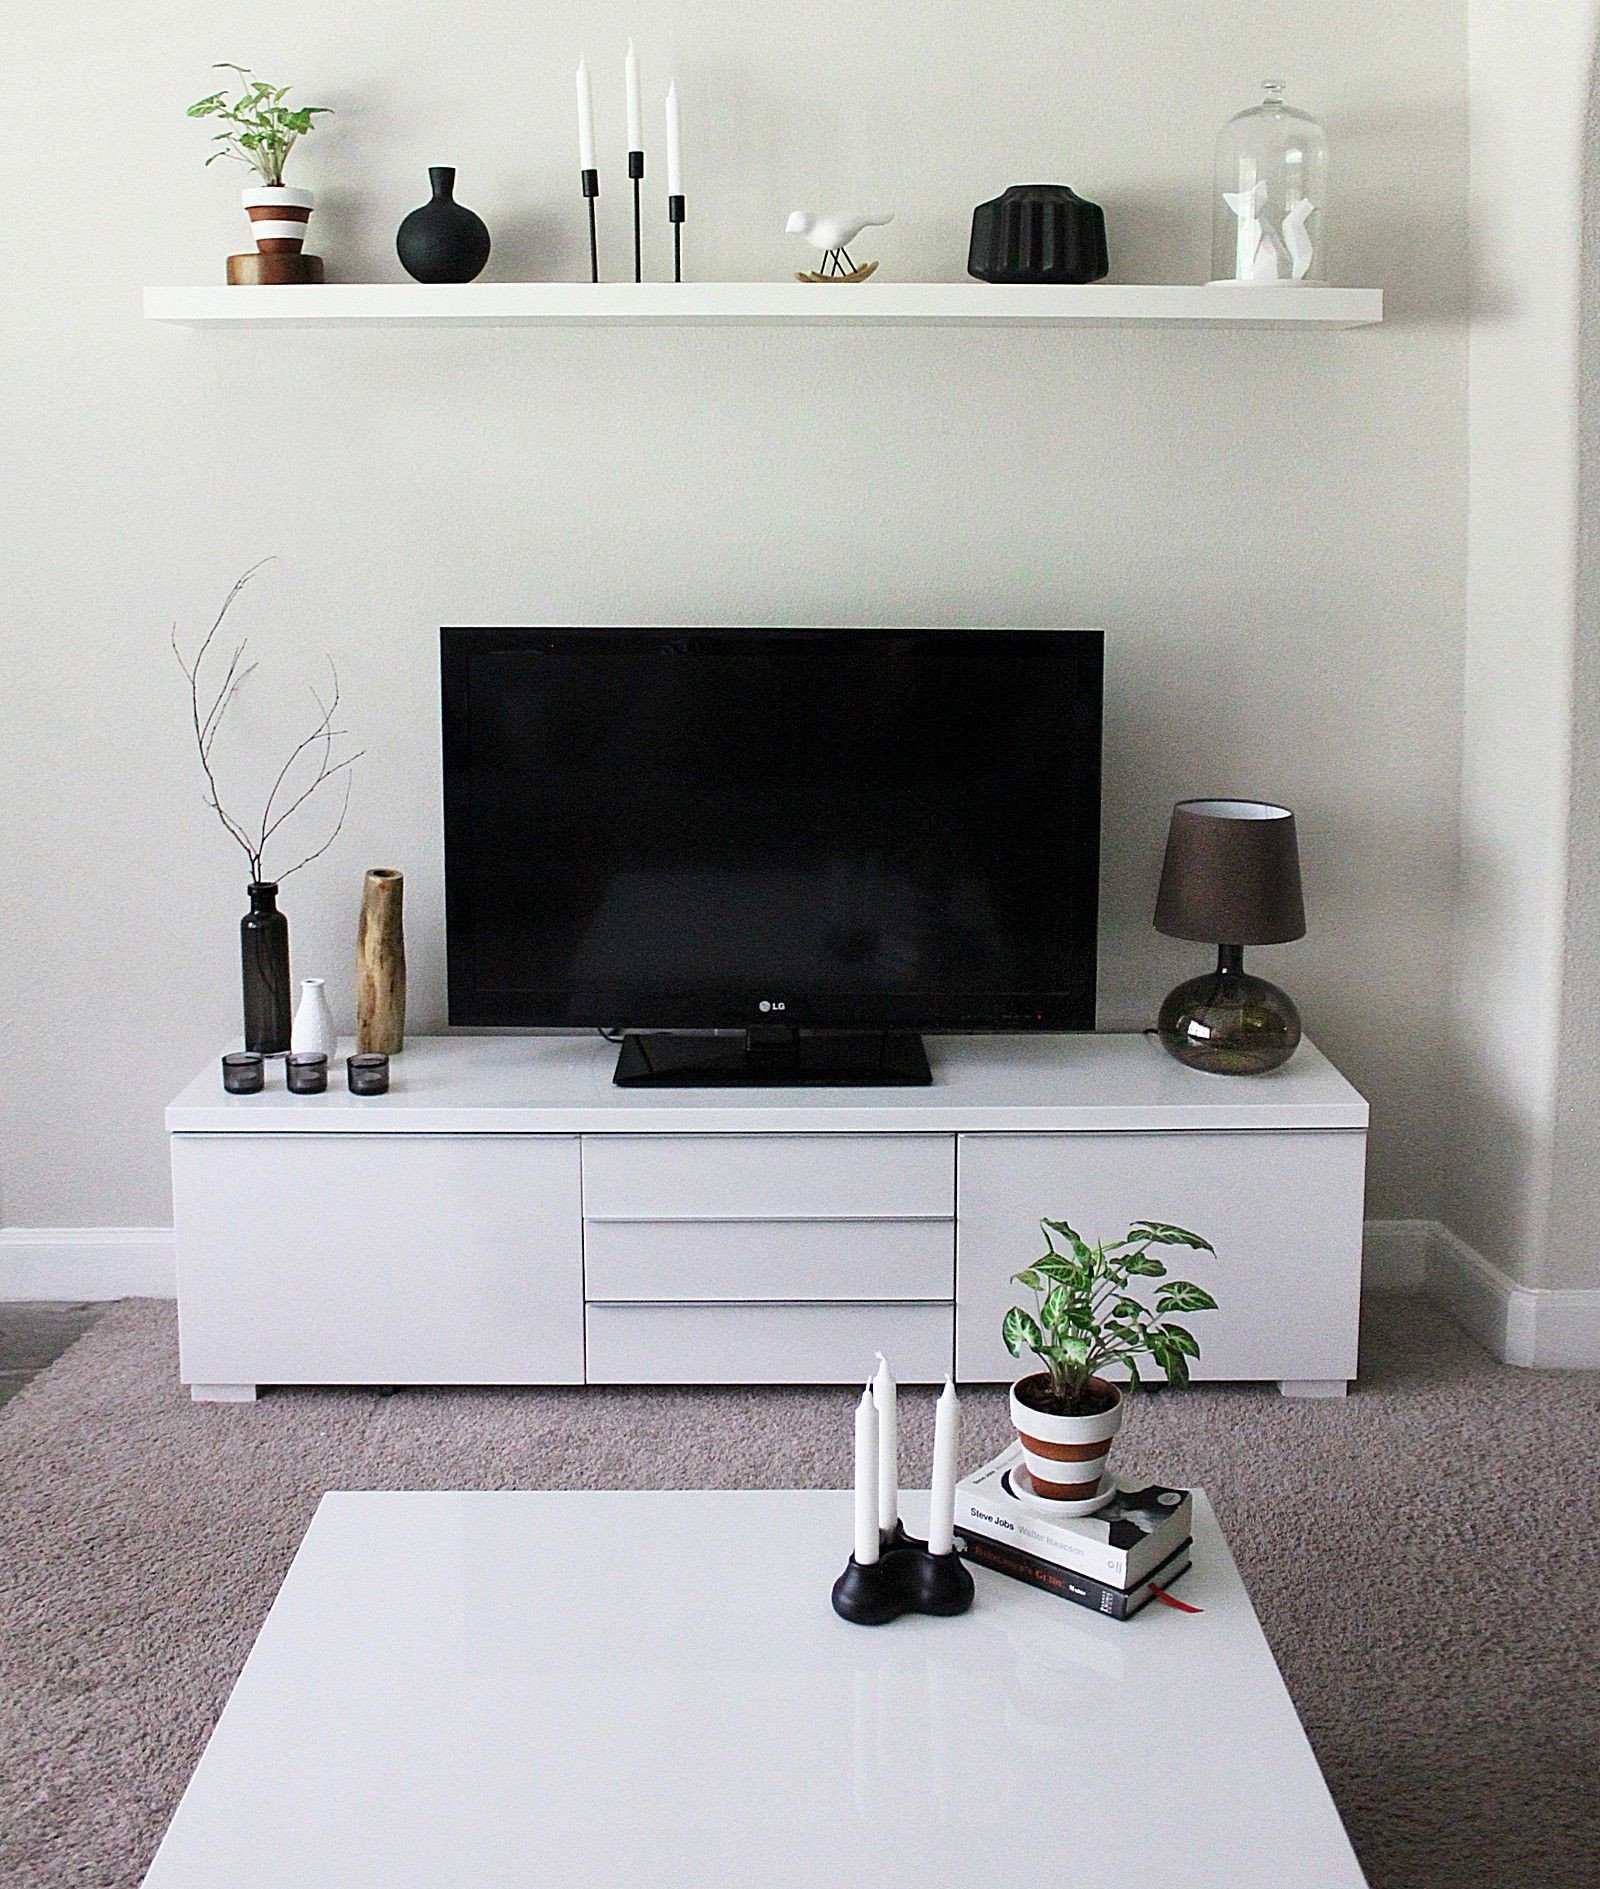 Living Room Ideas Tv Stand Inspirational Minimalist Tv Stand and Cabinet Ikea Besta